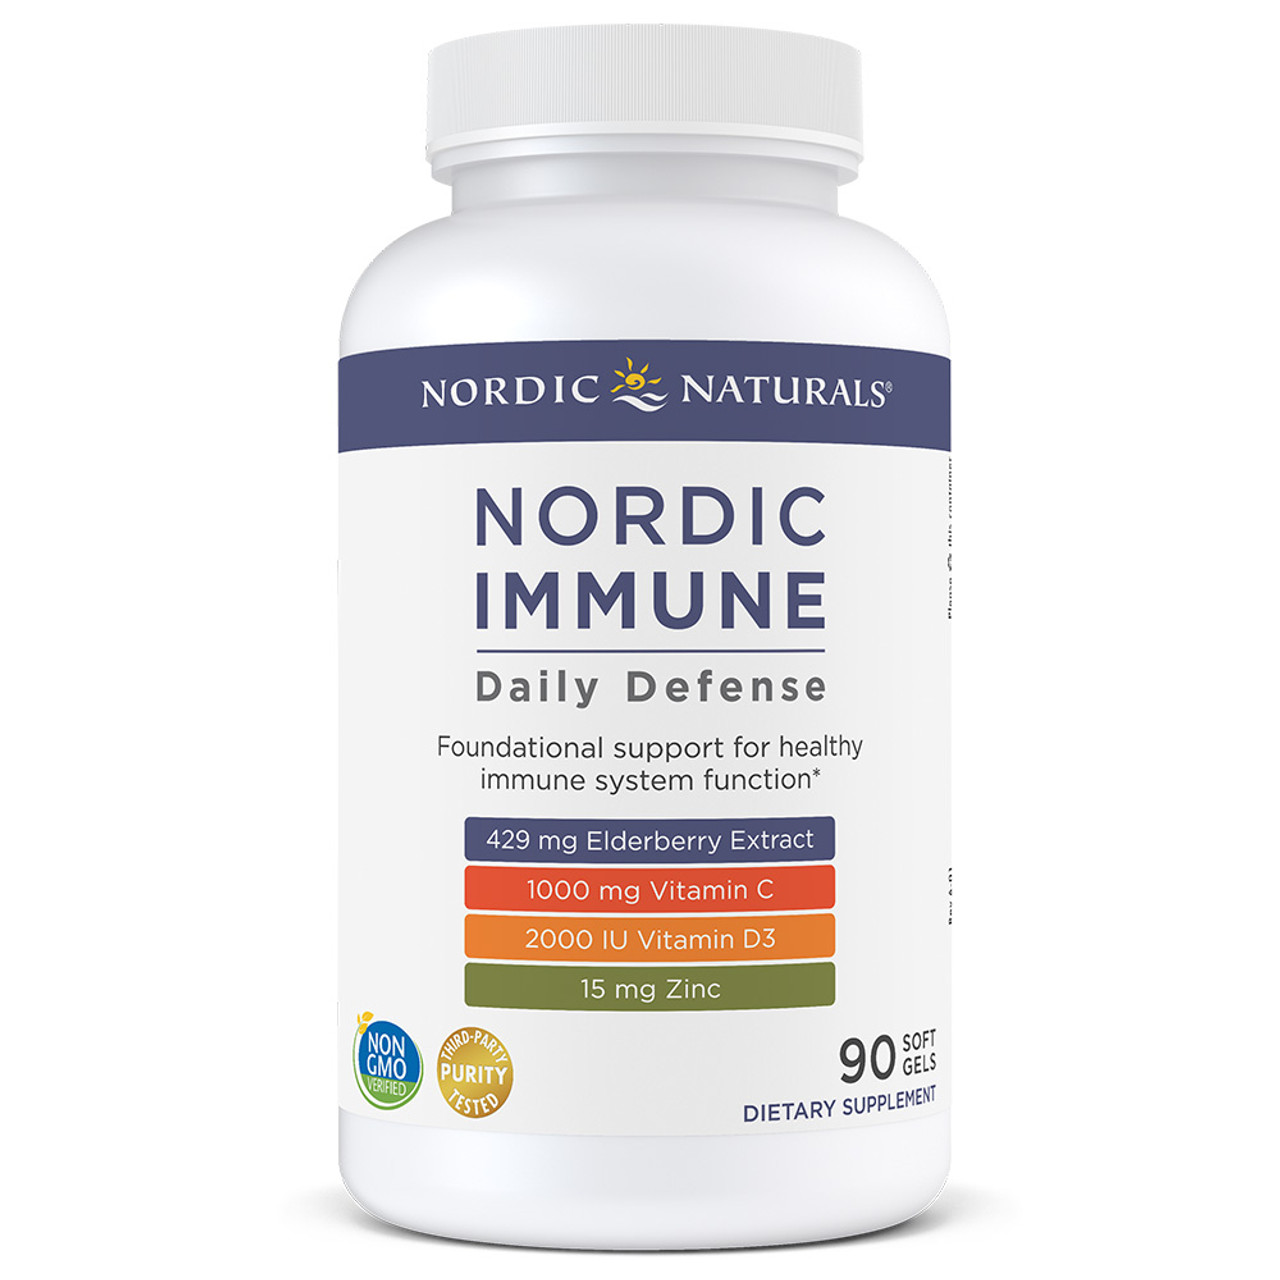 Nordic Immune Daily Defense - unflavored